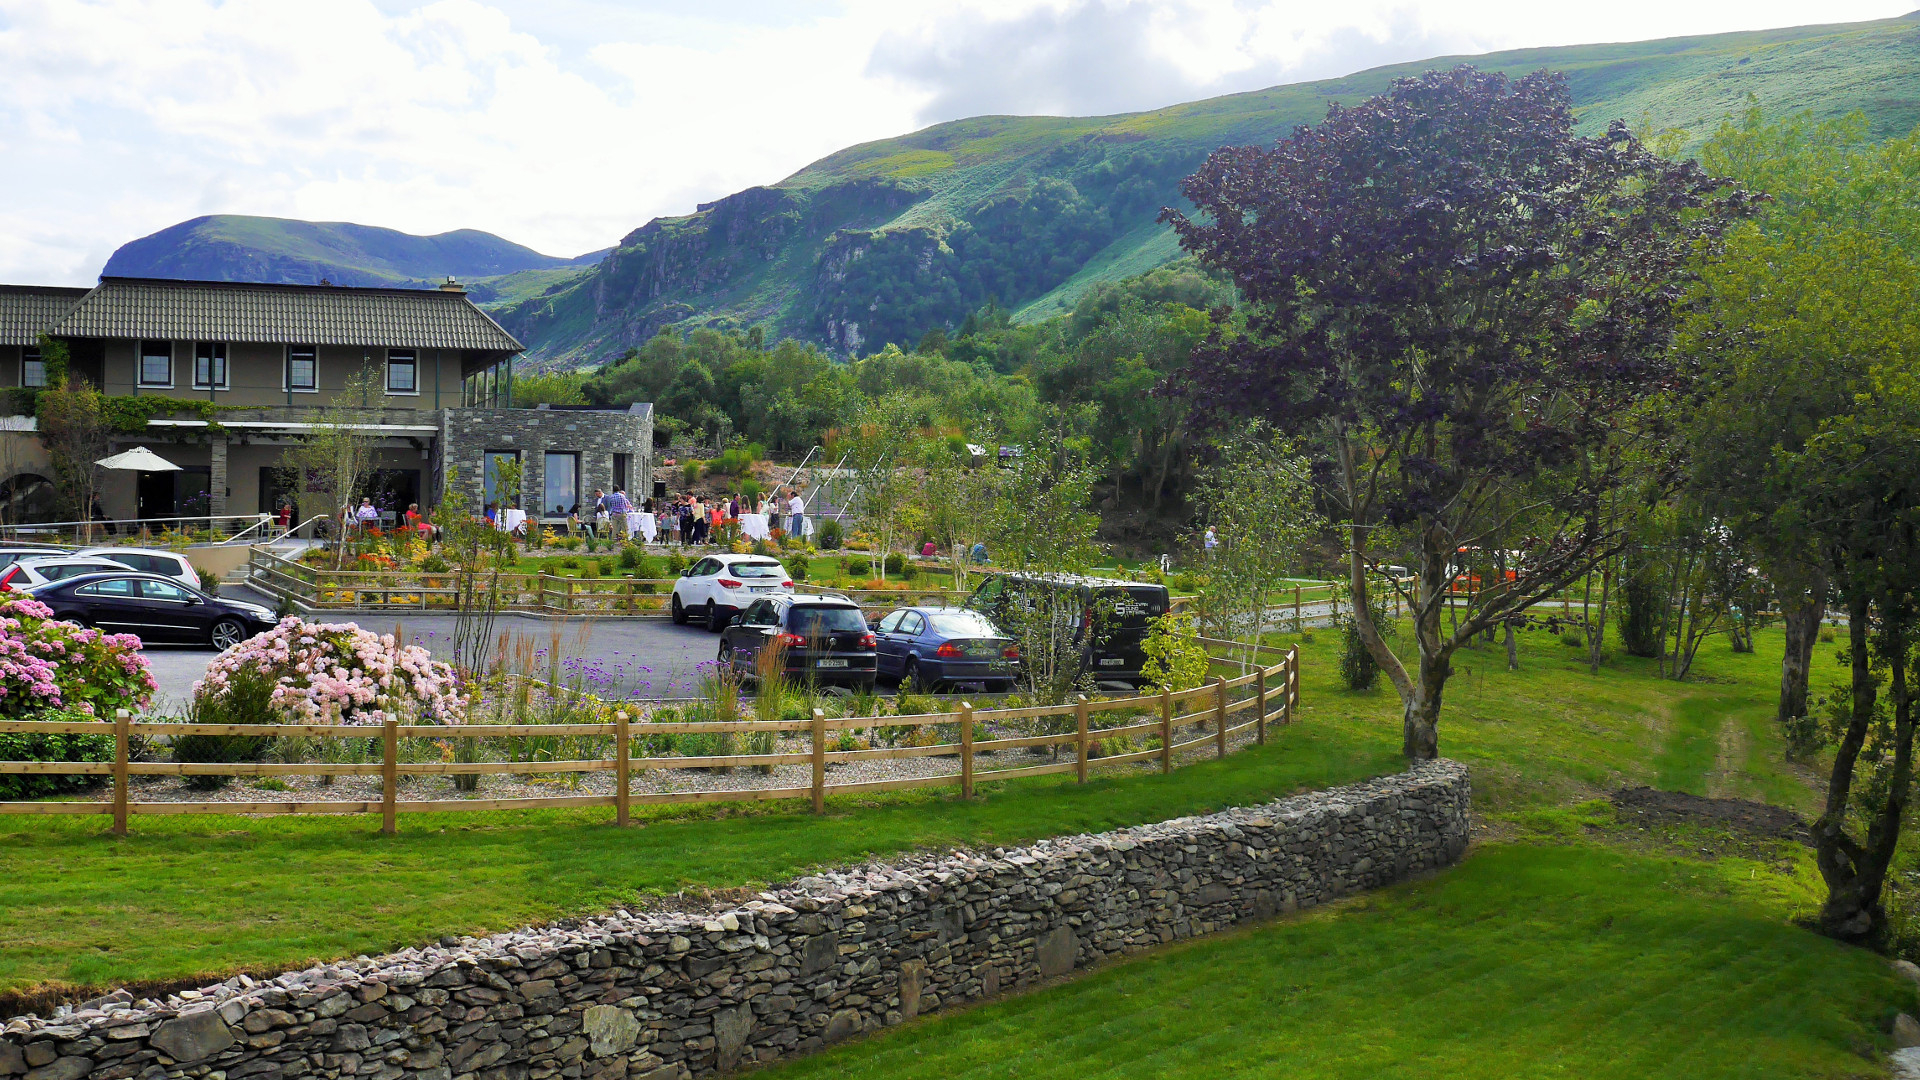 Gap of Dunloe Destination Gardens